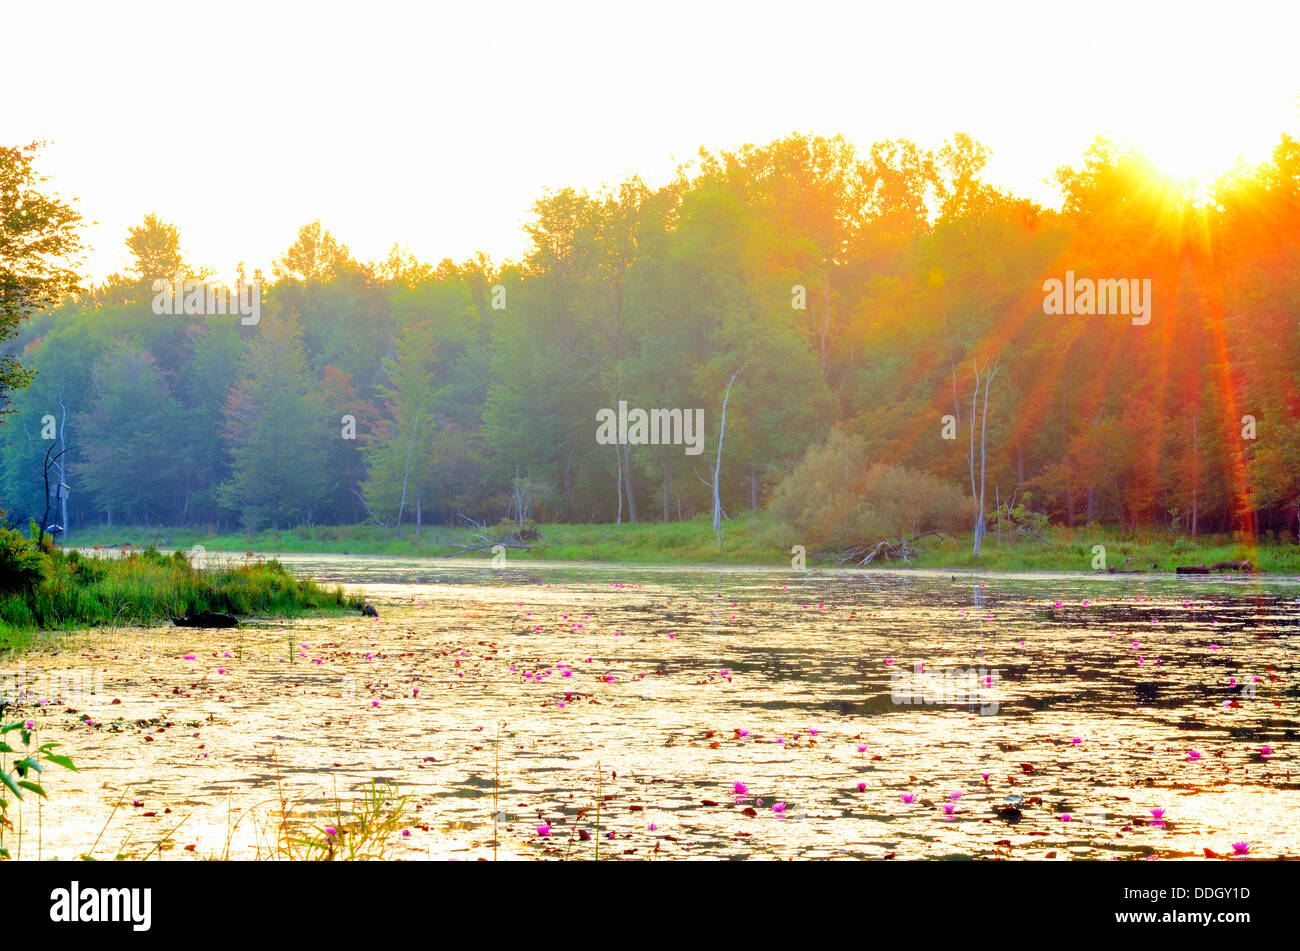 A Swamp Sunrise in the late summer season. - Stock Image